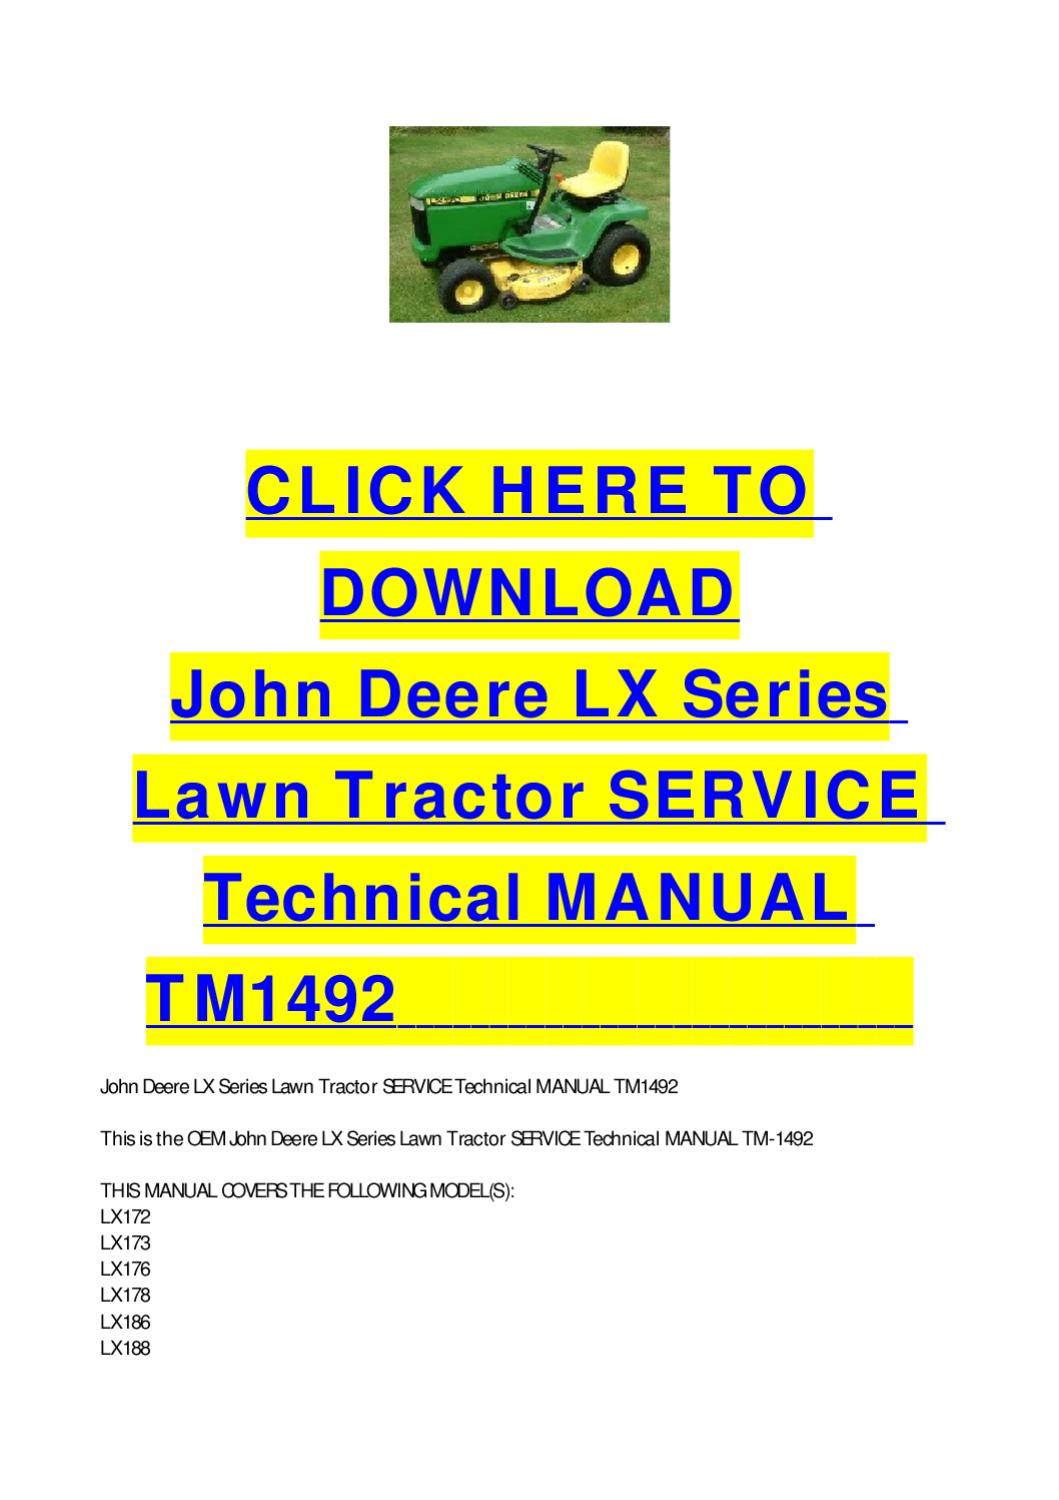 John Deere Manuals To Increase Your Vehicle Engine Performance